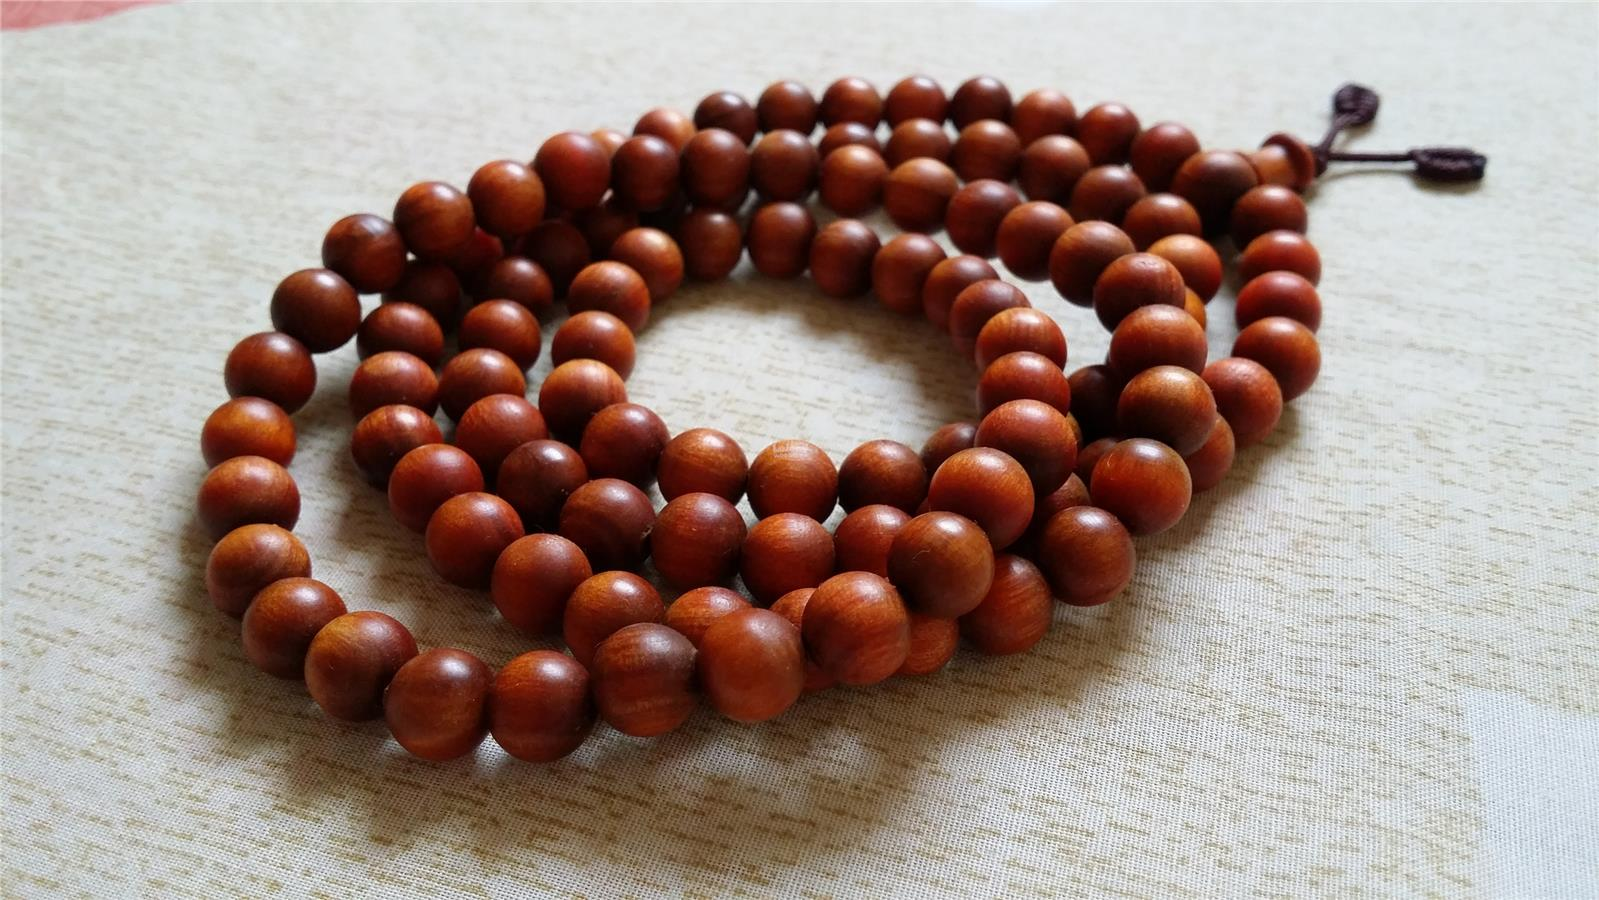 Raja Kayu (Kingwood) Prayer beads